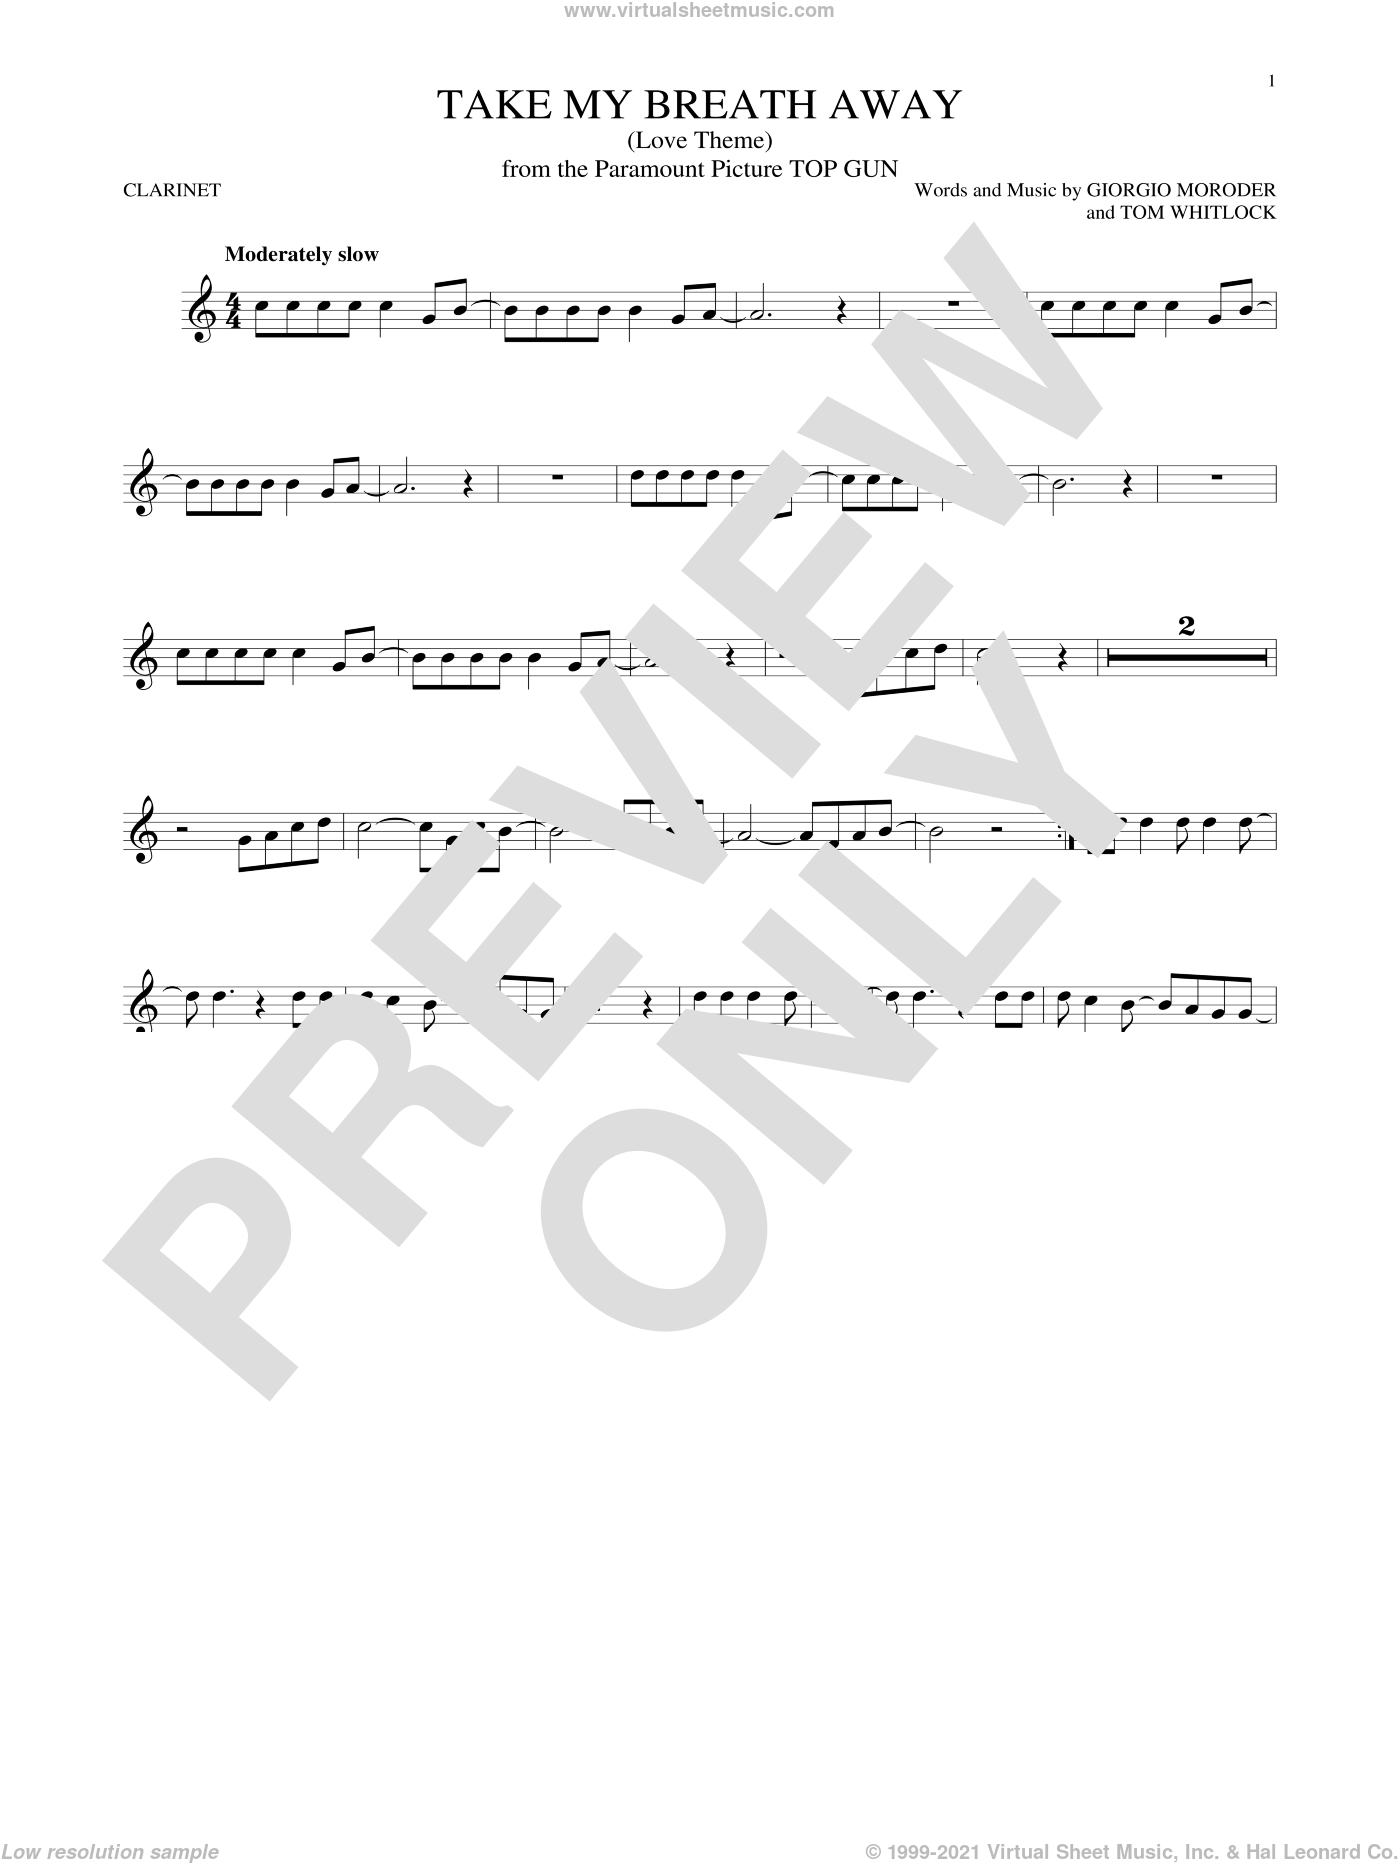 Take My Breath Away (Love Theme) sheet music for clarinet solo by Giorgio Moroder, Berlin and Jessica Simpson. Score Image Preview.